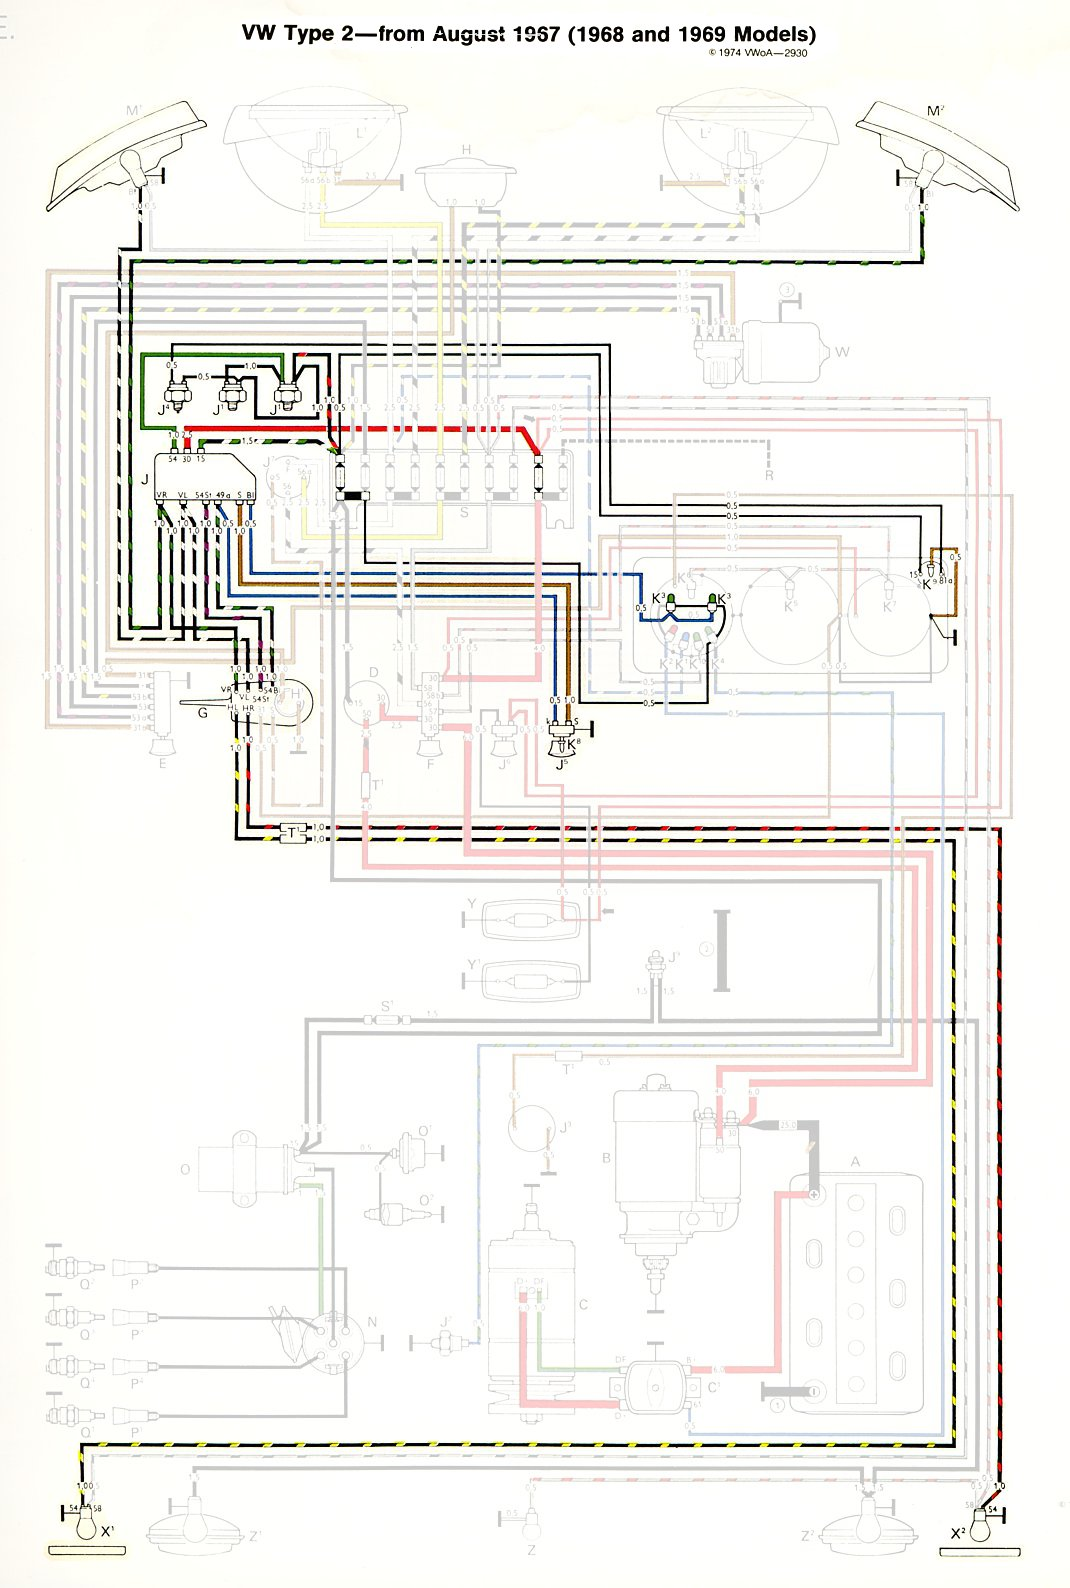 Vw Turn Signal Wiring Great Design Of Diagram 1964 Bug Fuse Box 1968 Bus Get Free Image About